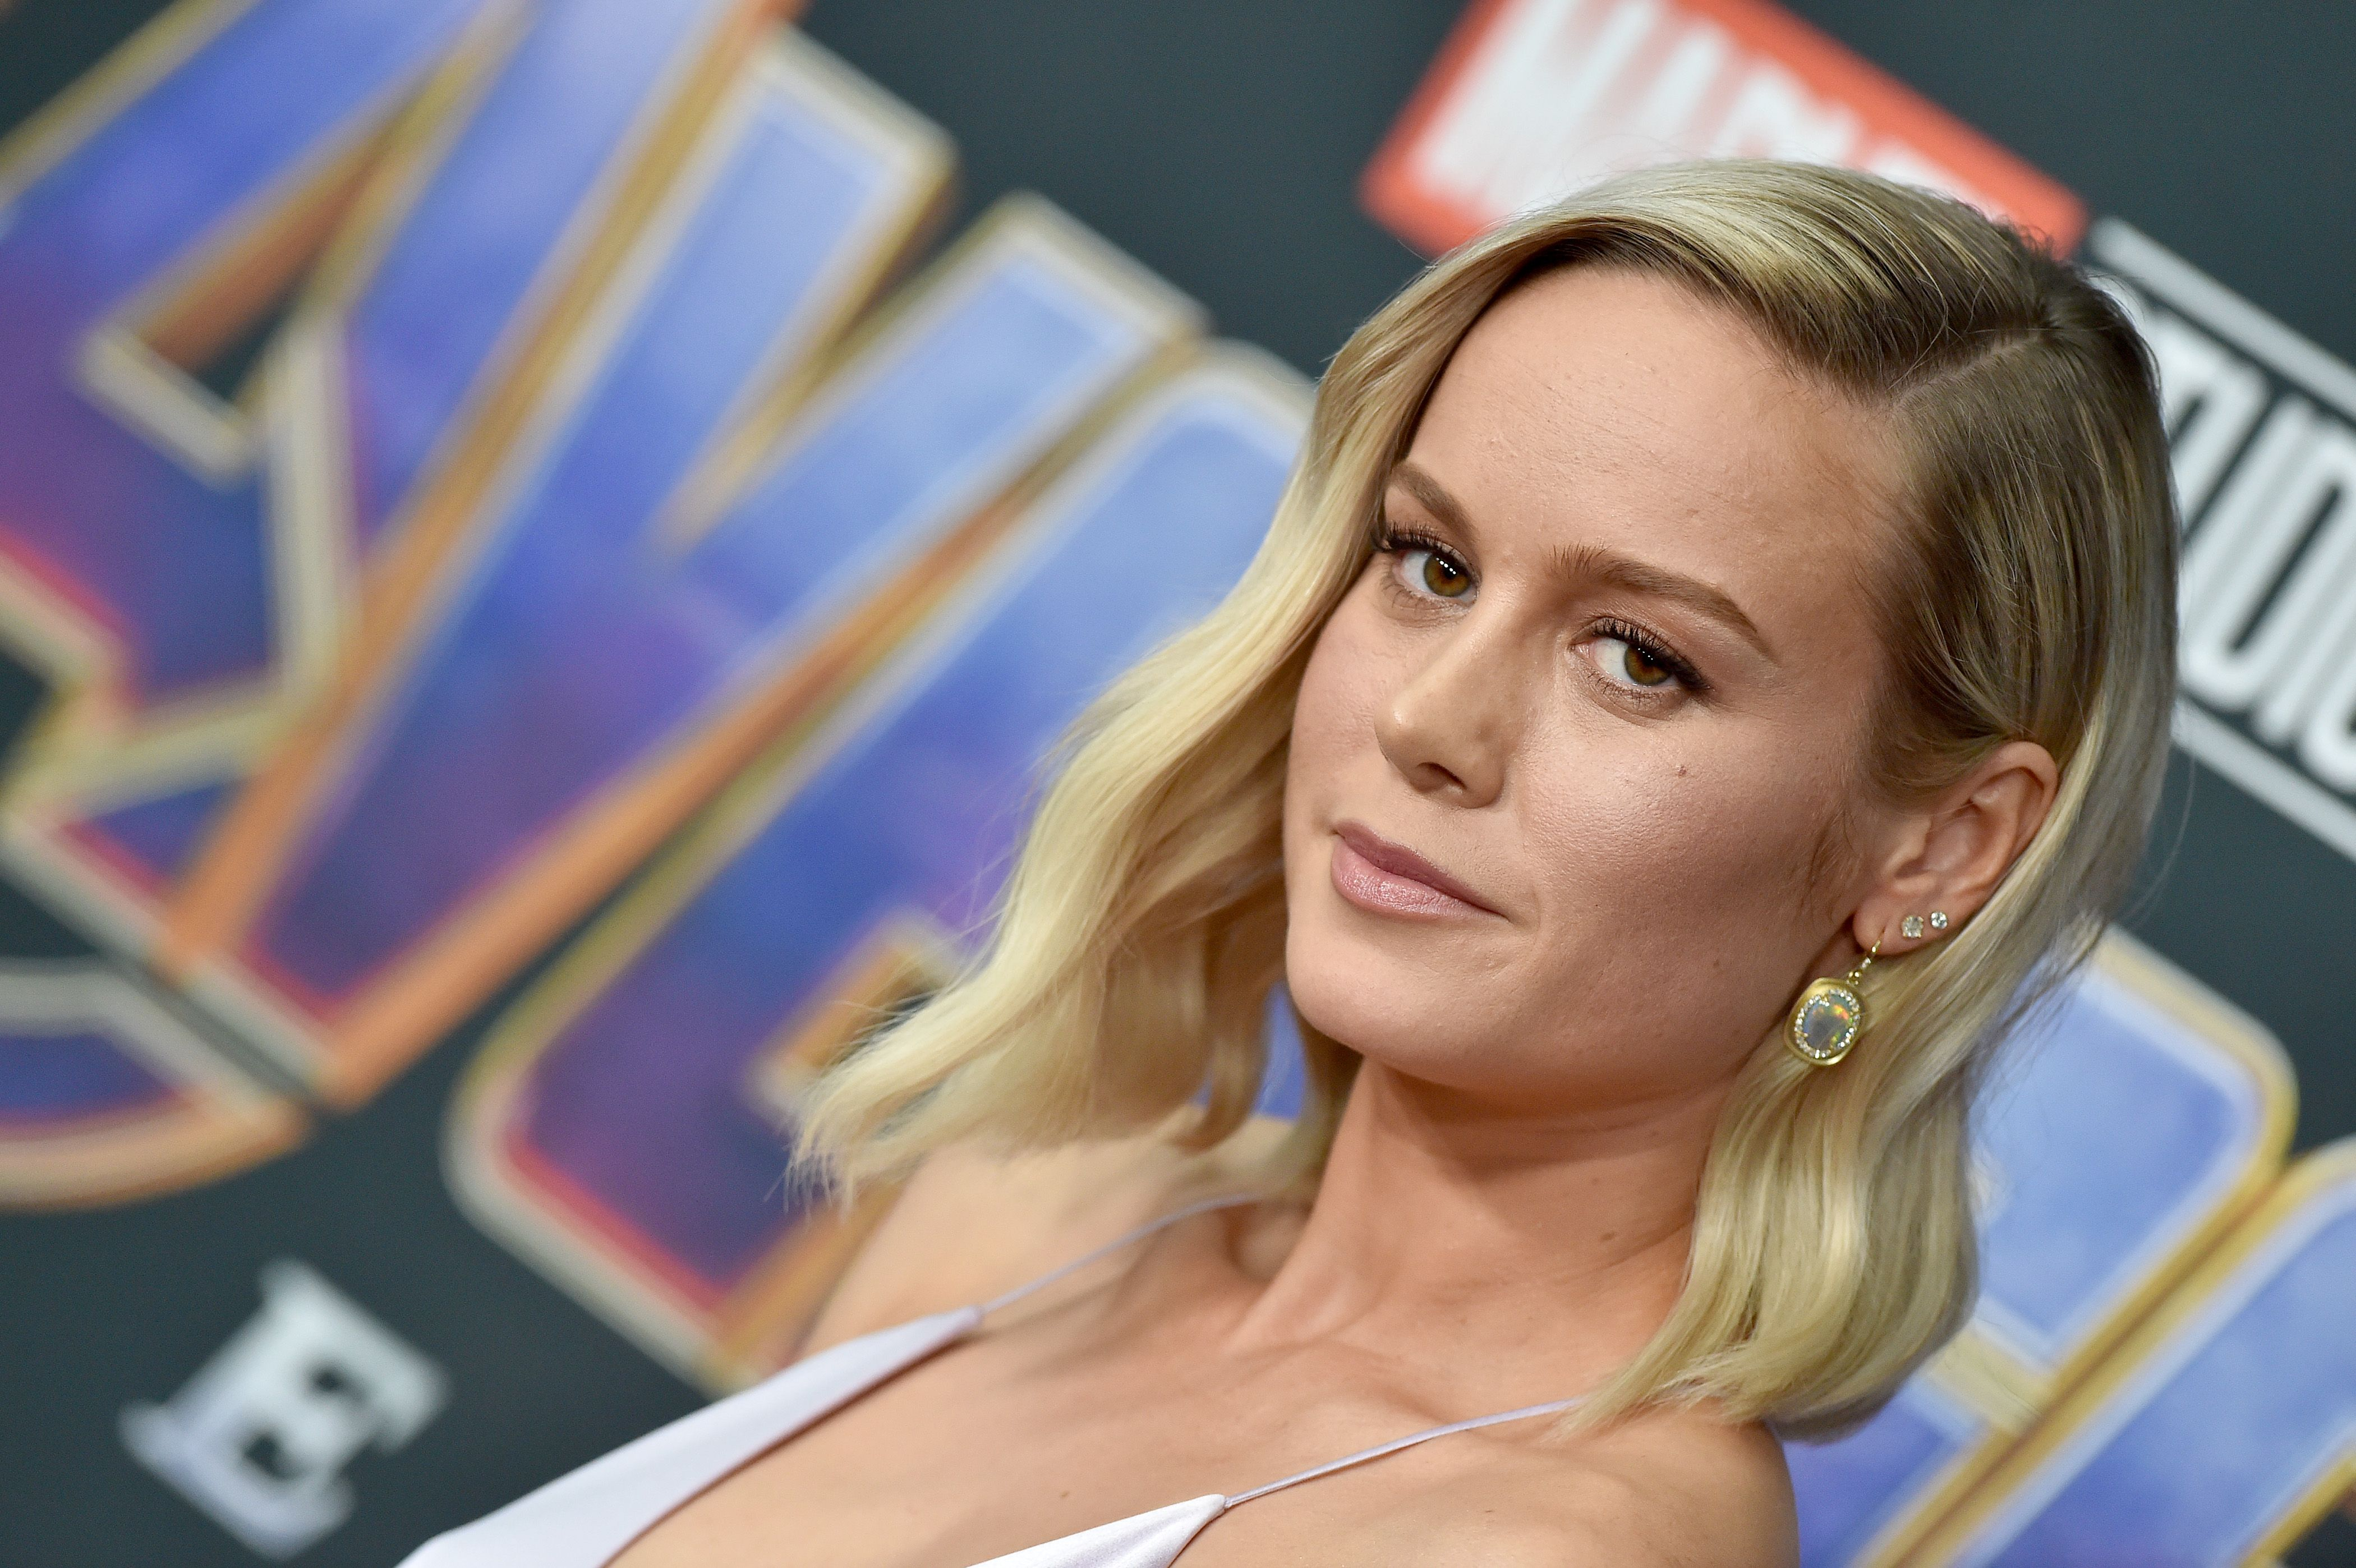 Brie Larson Just Donned the Most MAJOR (and Thematic) Jewelry at the 'Avengers: Endgame' Premiere